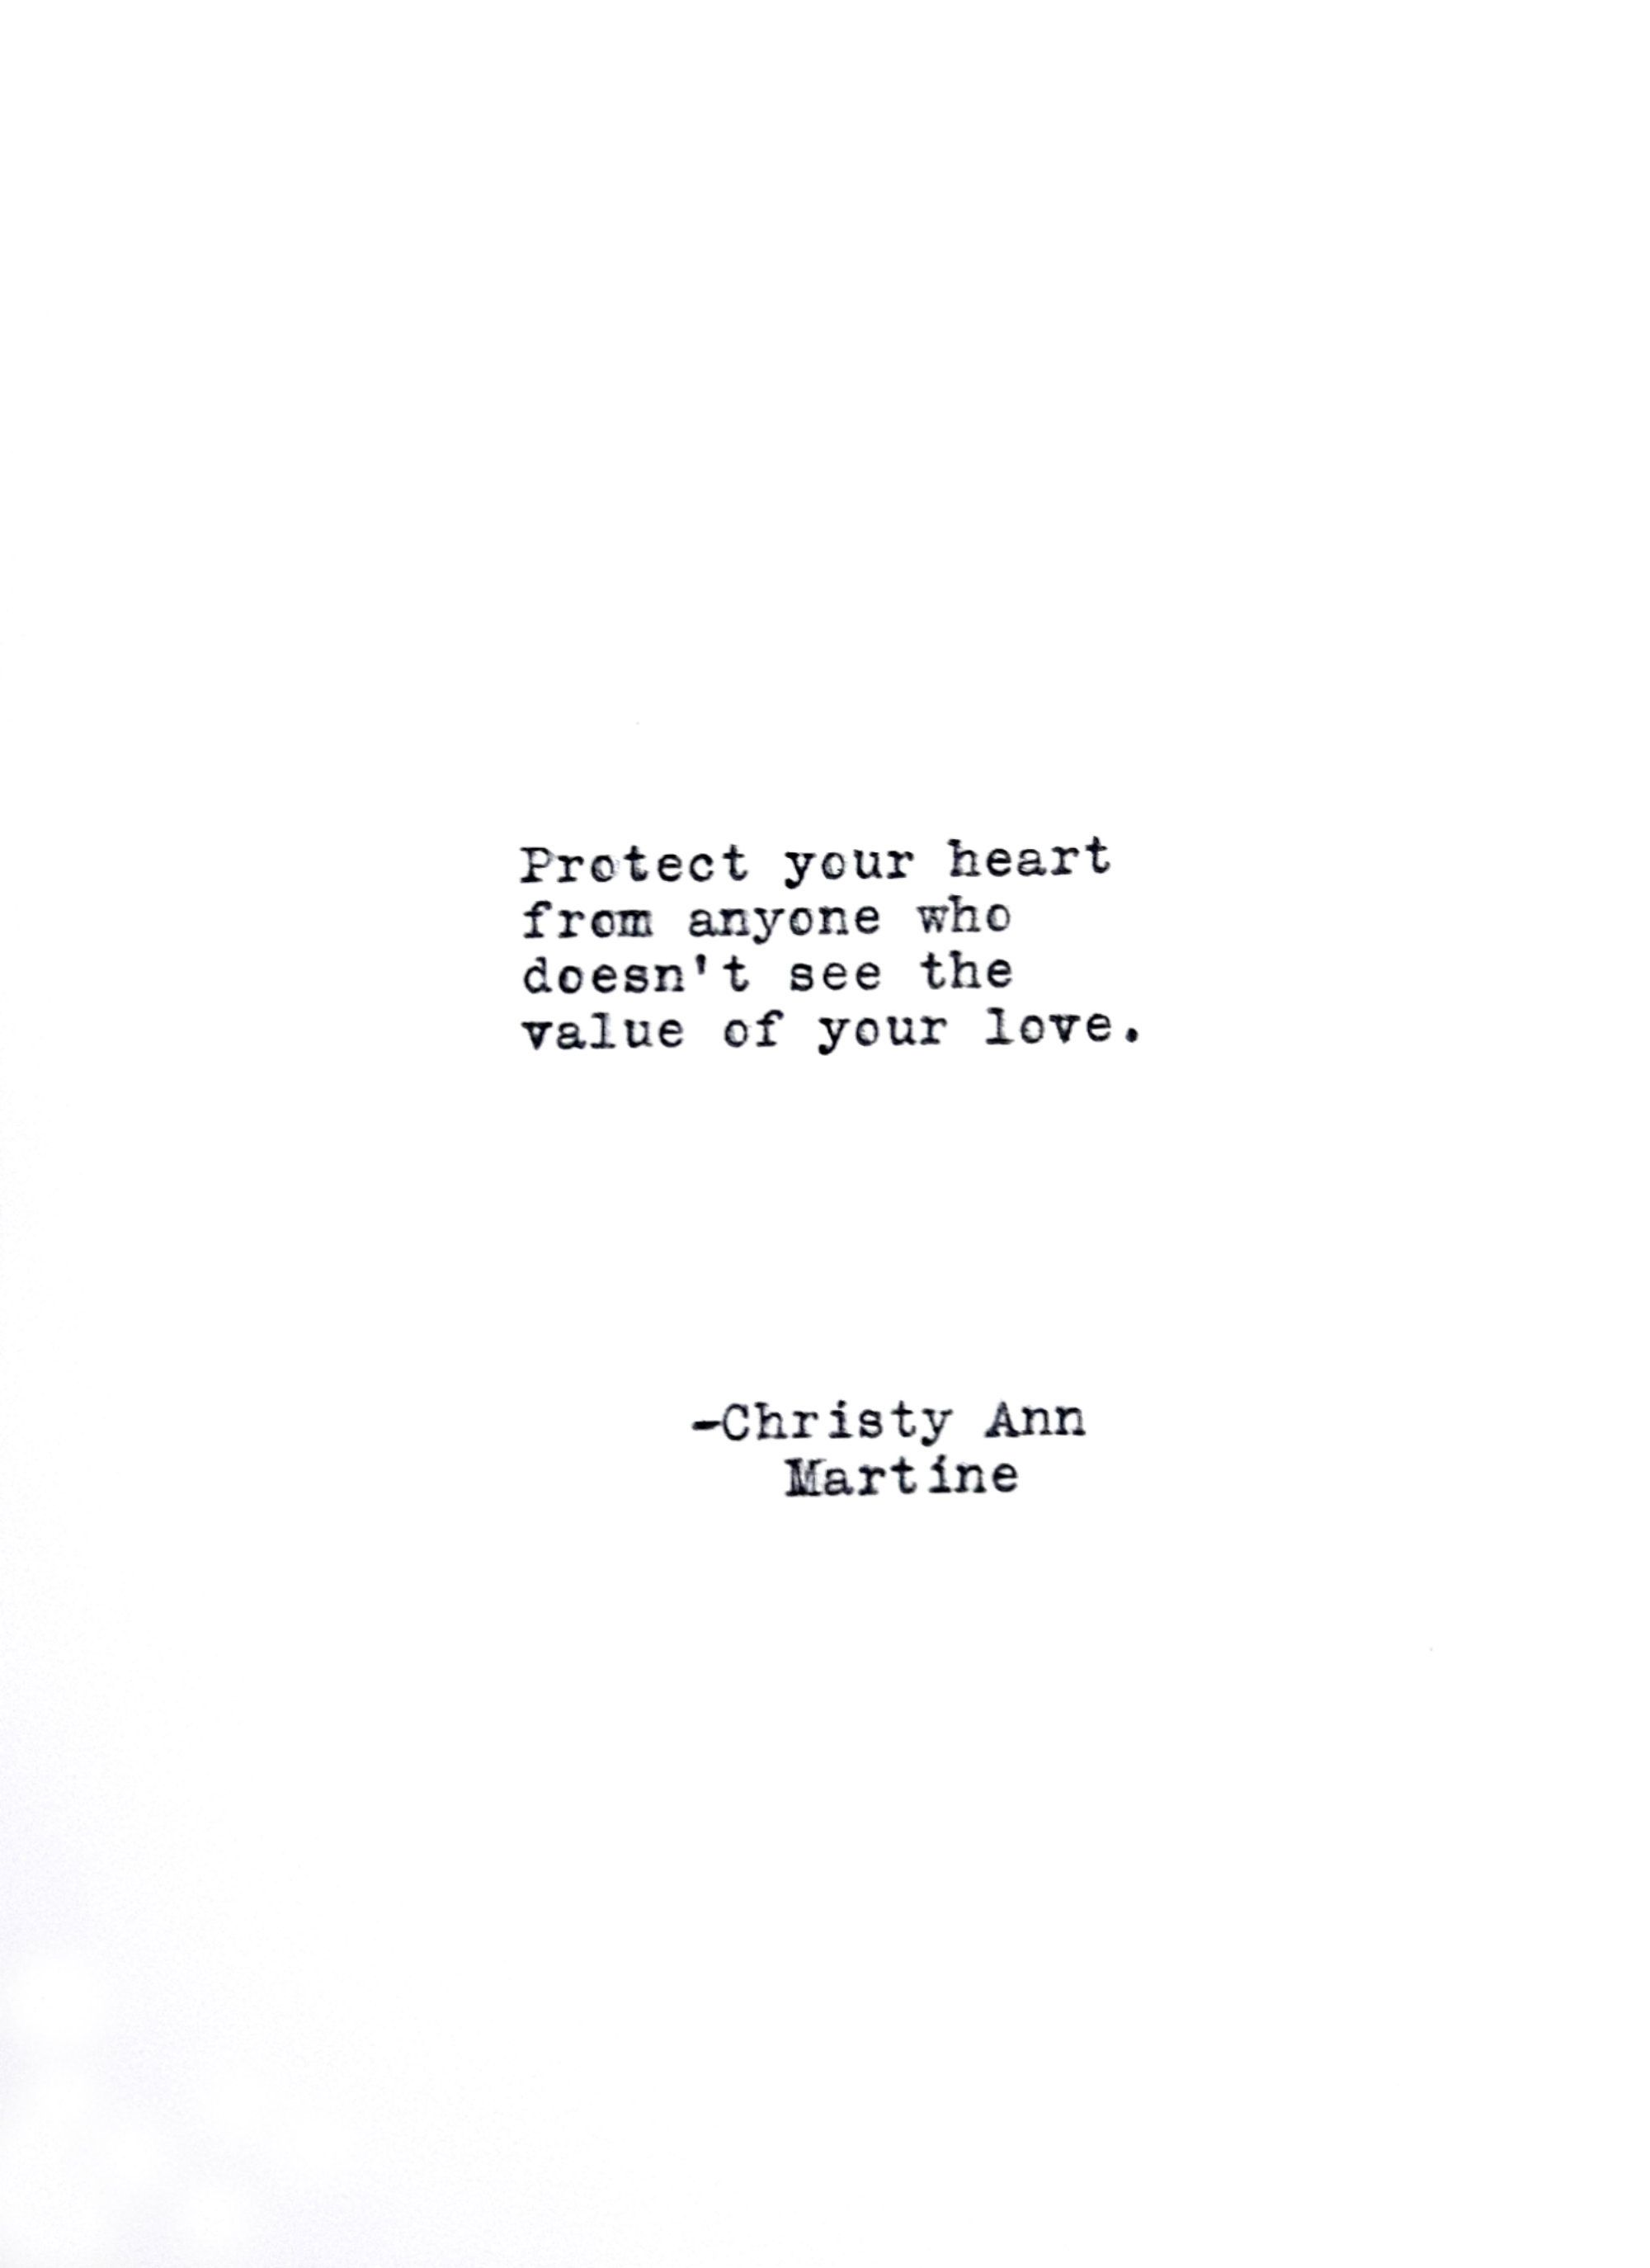 Protect Your Heart Quote Divorce Break Up Quotes Self Care Self Love Hand Typed By Poet Heart Quotes Feelings My Heart Quotes Up Quotes